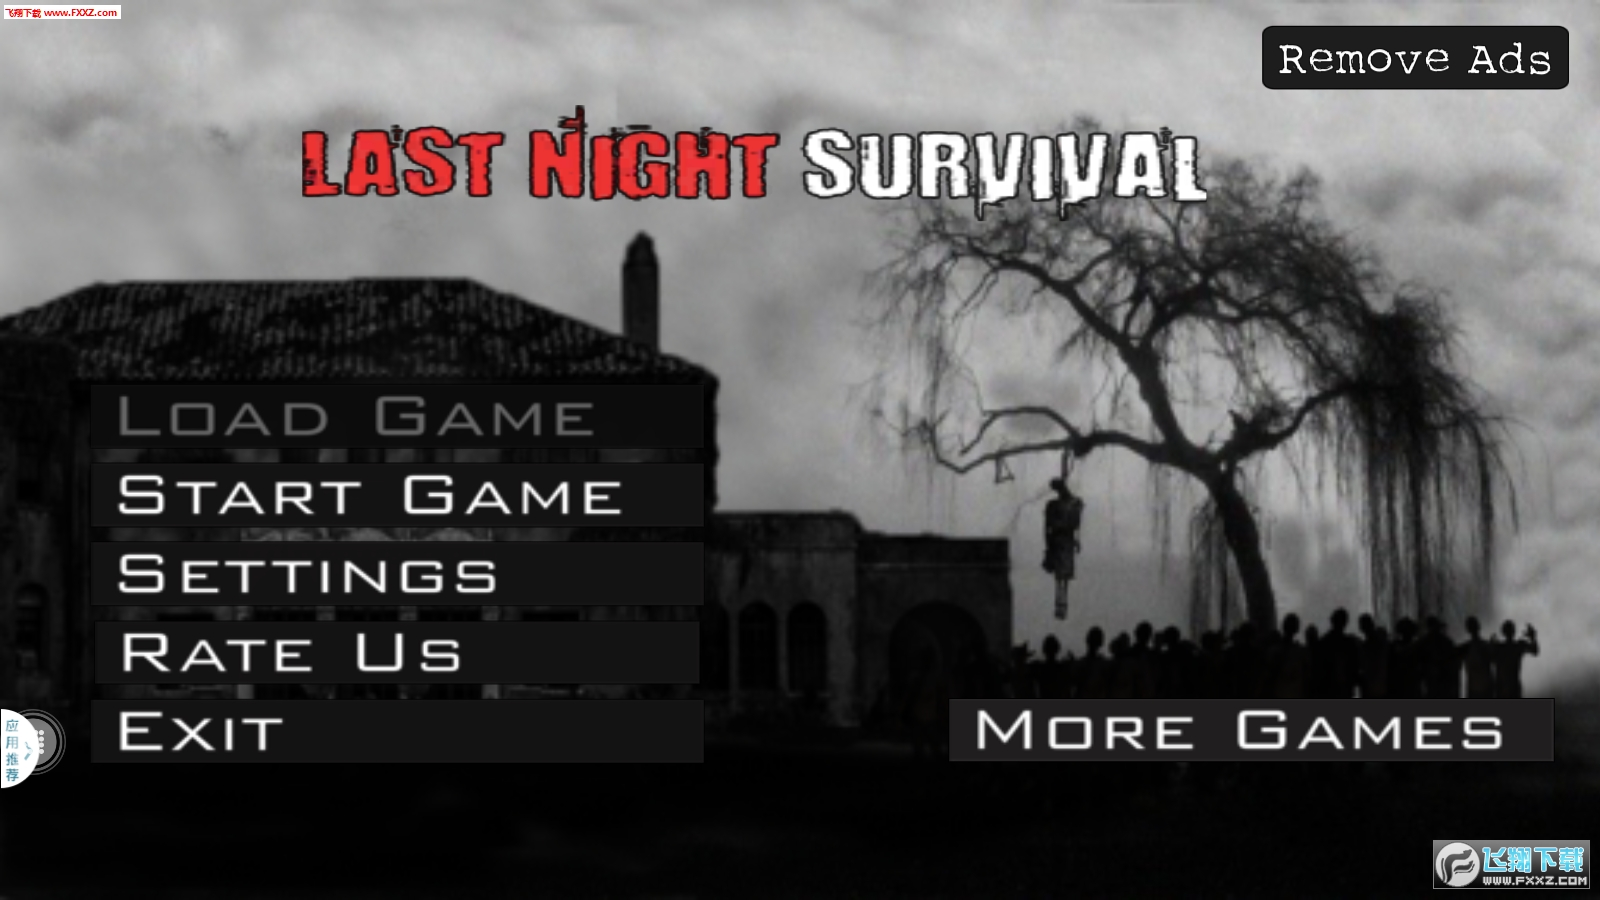 LAST NIGHT SURVIVAL手游截图0